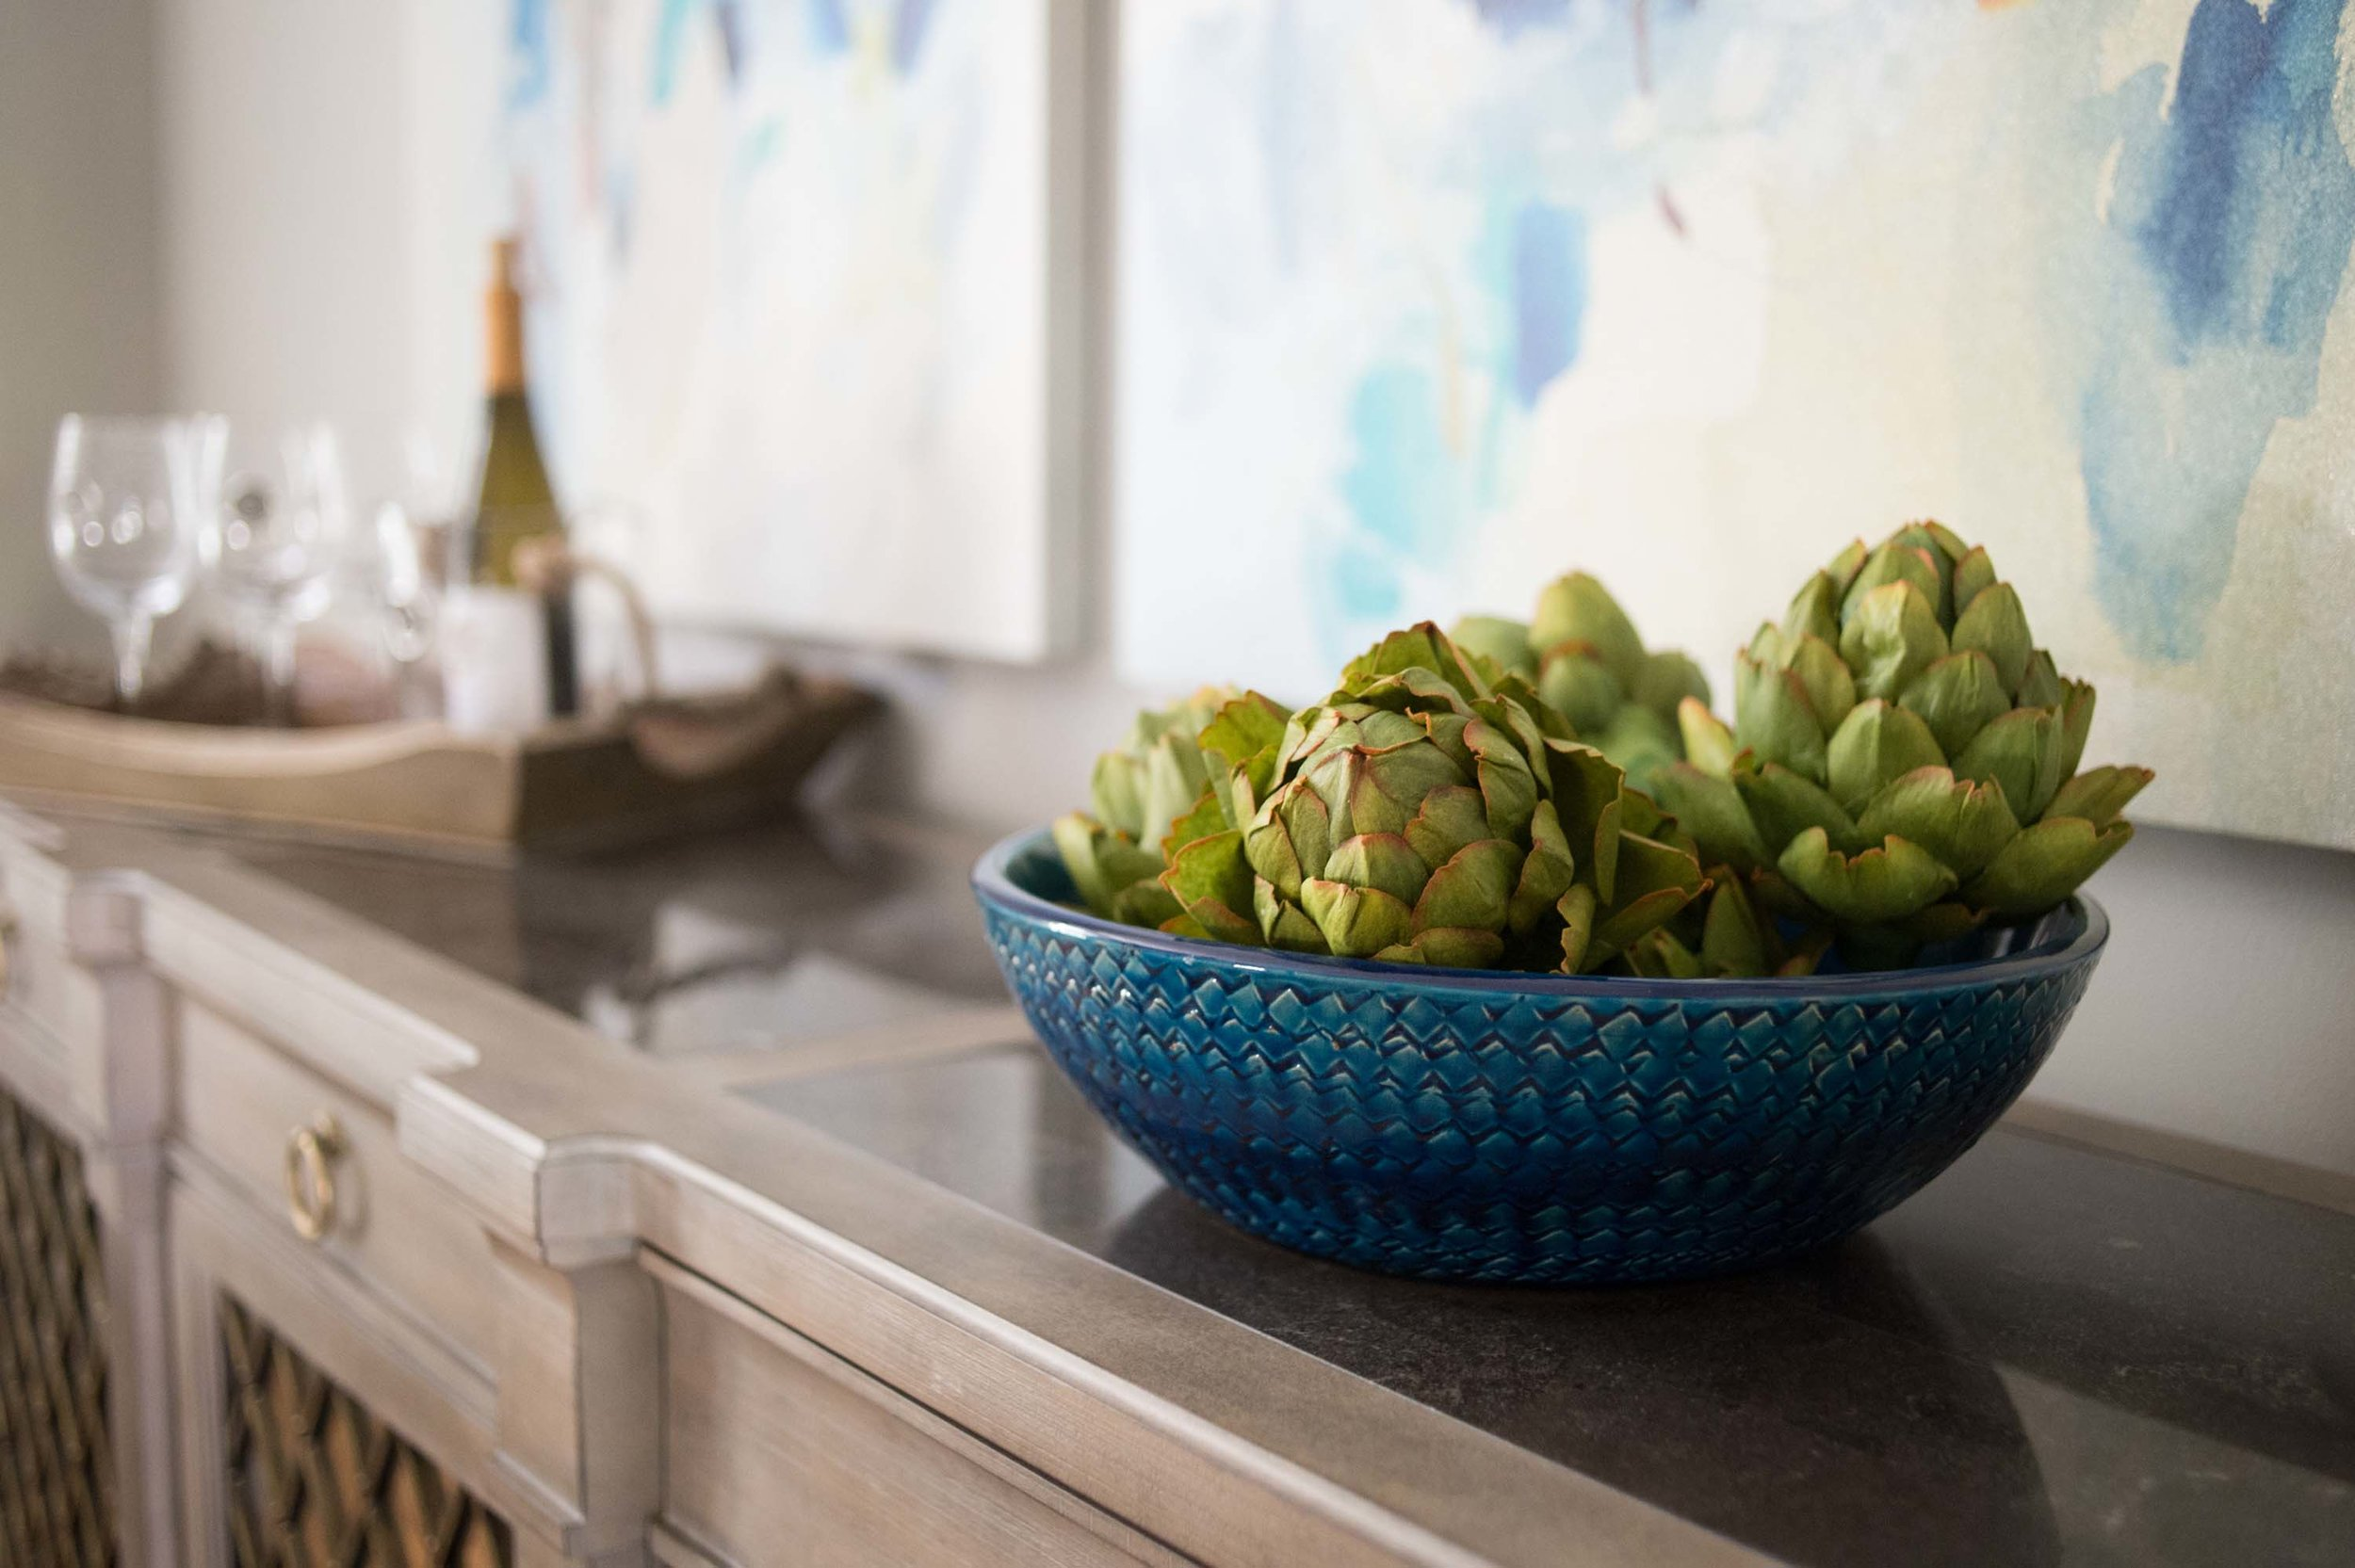 Accessories for Buffet that include artichokes, blue bowl & wine glasses